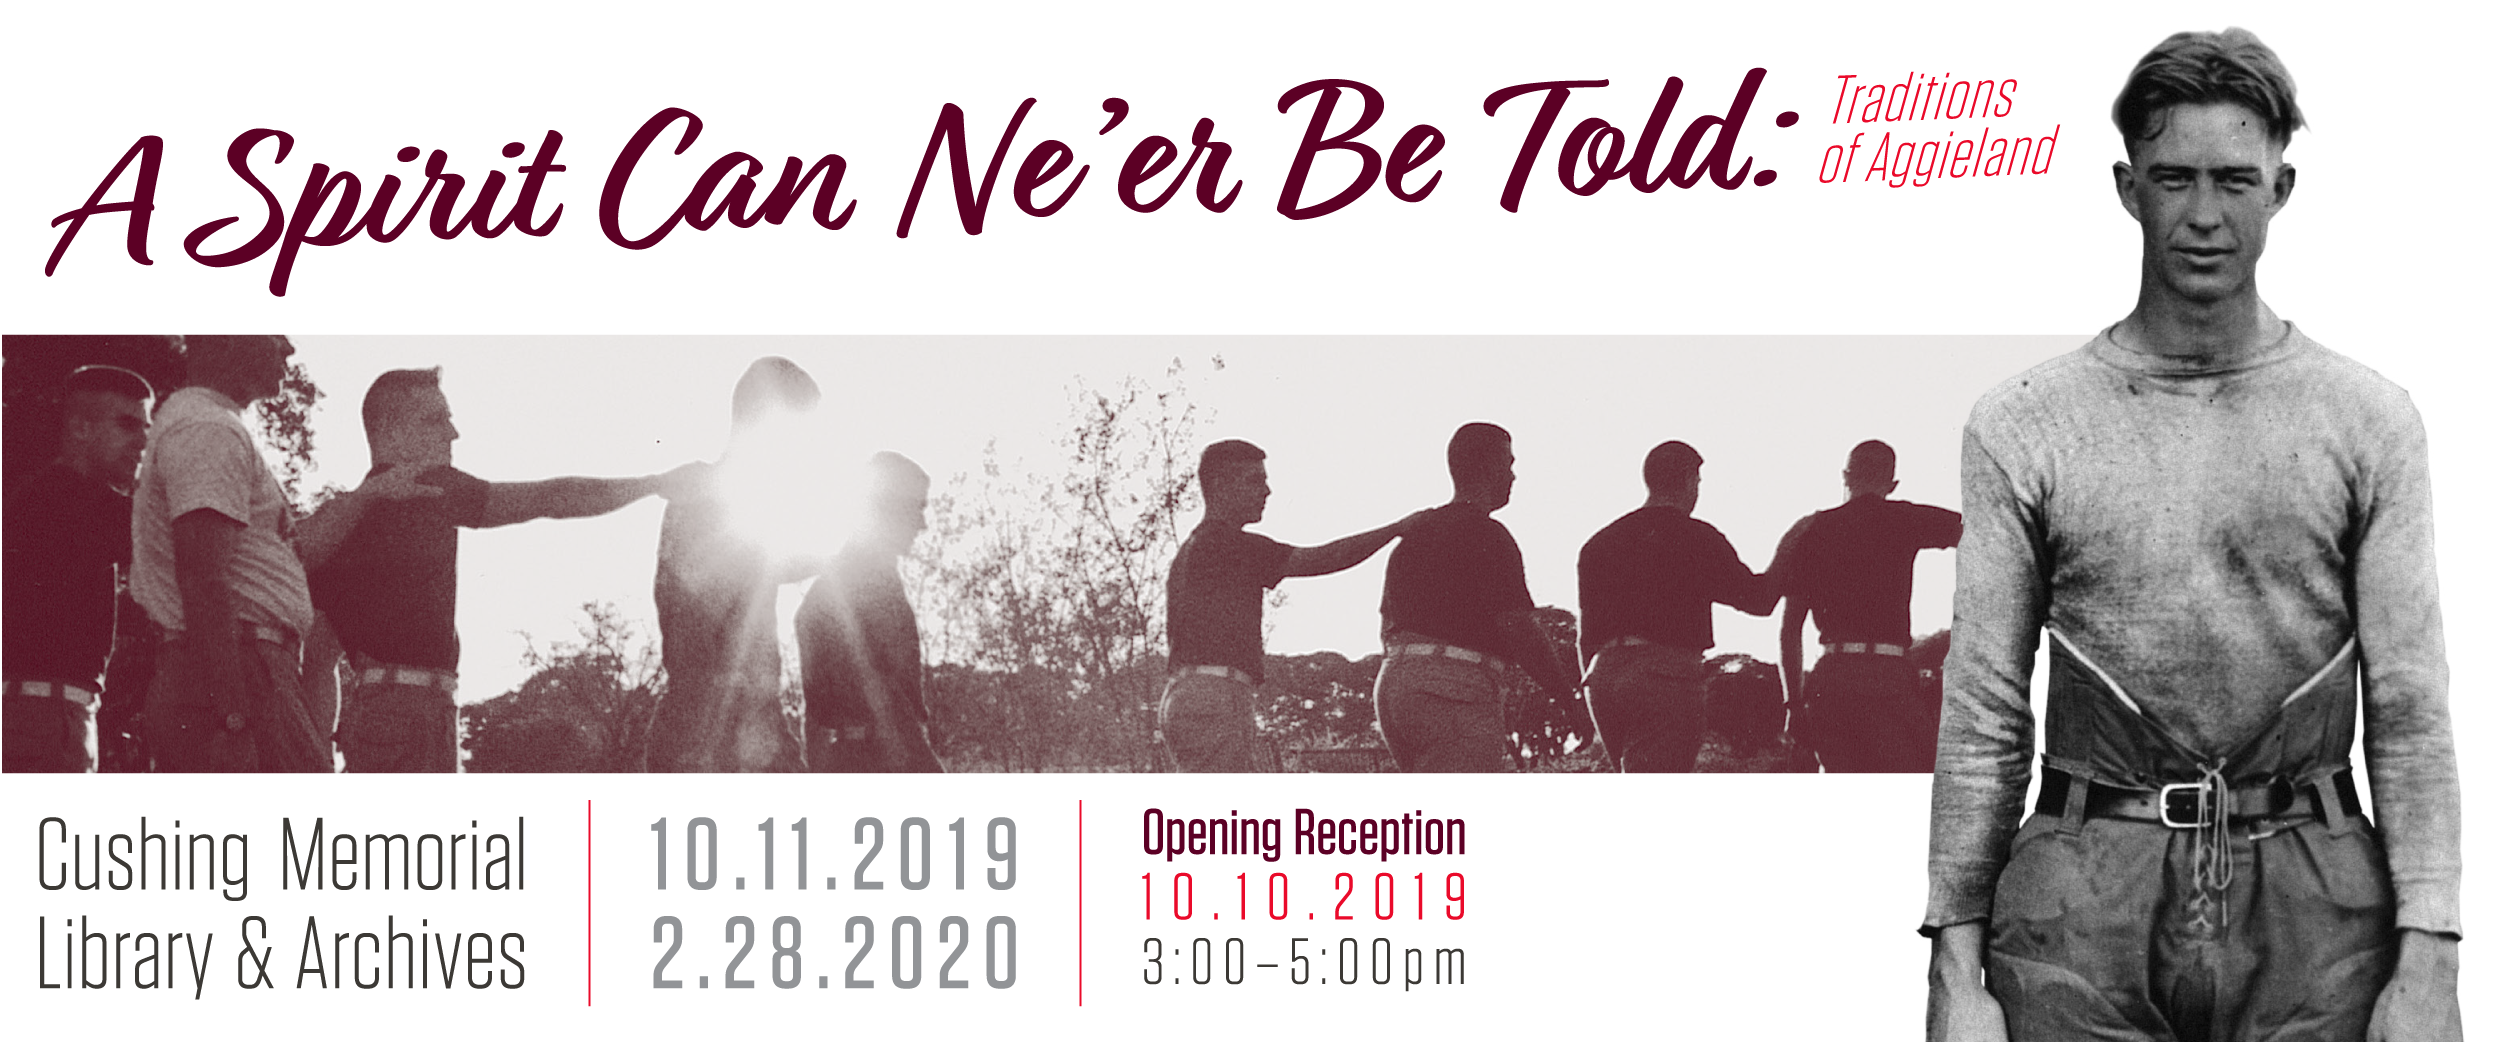 A Spirit Can Ne'er Be Told: Traditions of Aggieland exhibit. Located at Cushing Memorial Library & Archives from October 11, 2019 through February 28, 2020. Opening reception is October 10, from 3:00 to 5:00 pm.